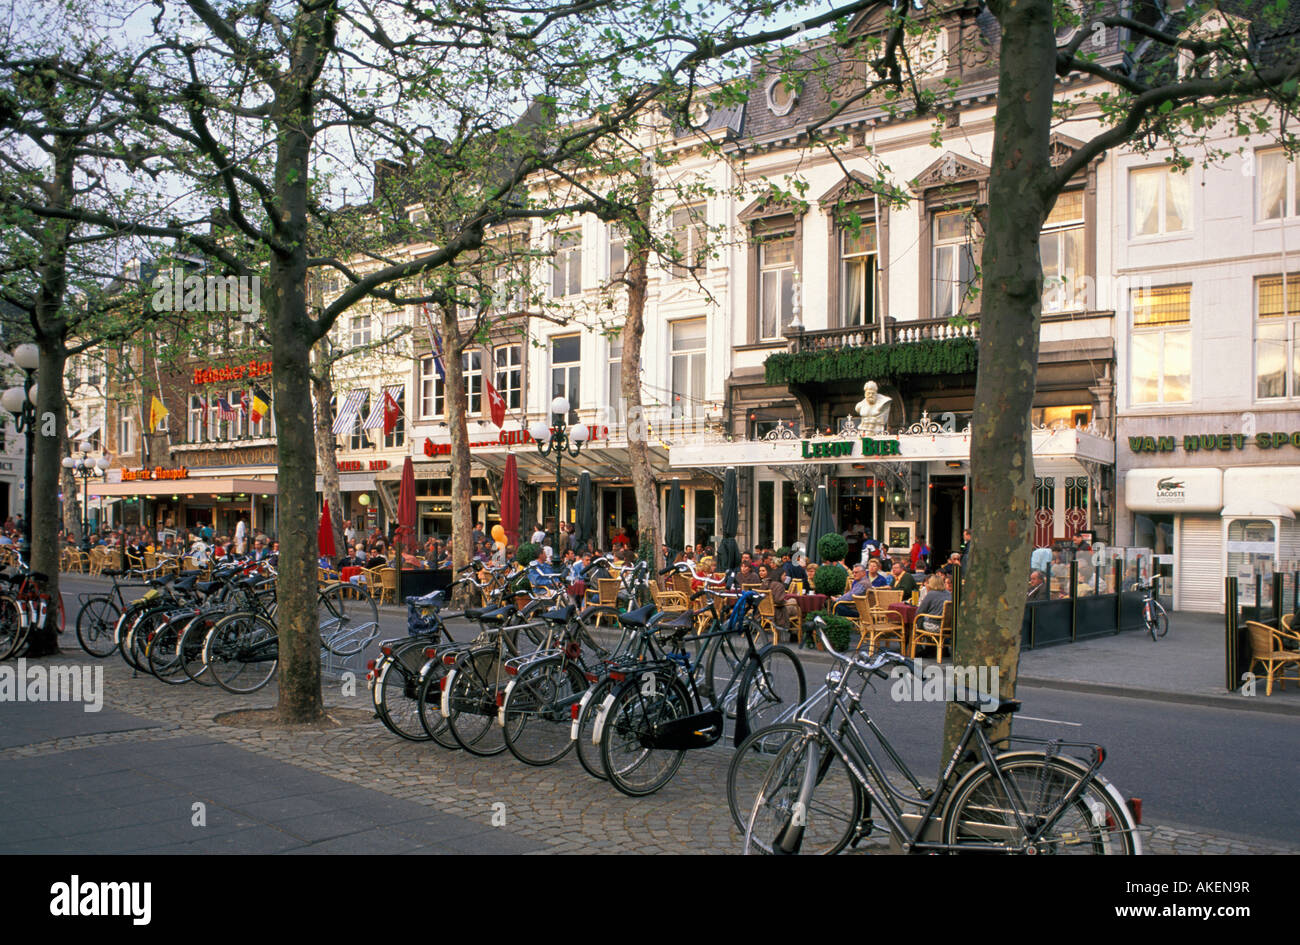 Town centre maastricht holland stock photo royalty free - Maastricht mobel ...